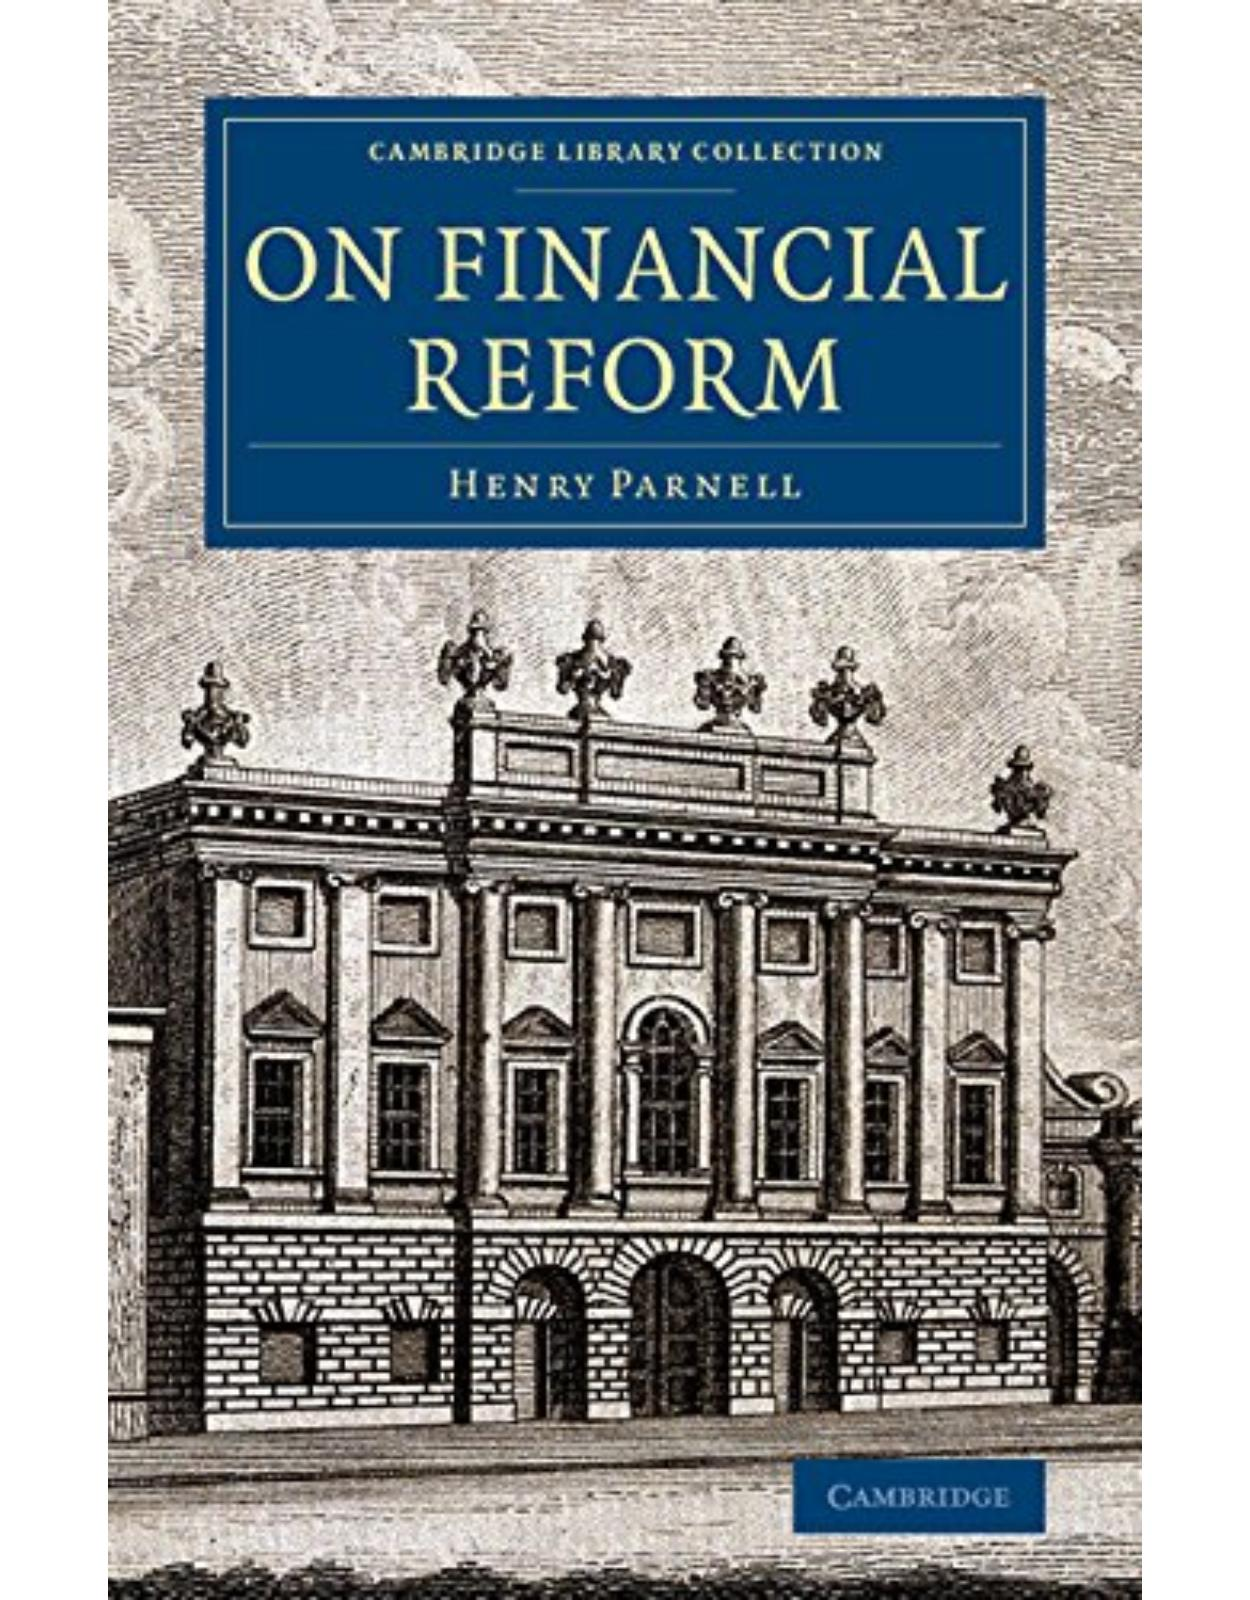 On Financial Reform (Cambridge Library Collection - British and Irish History, 19th Century)